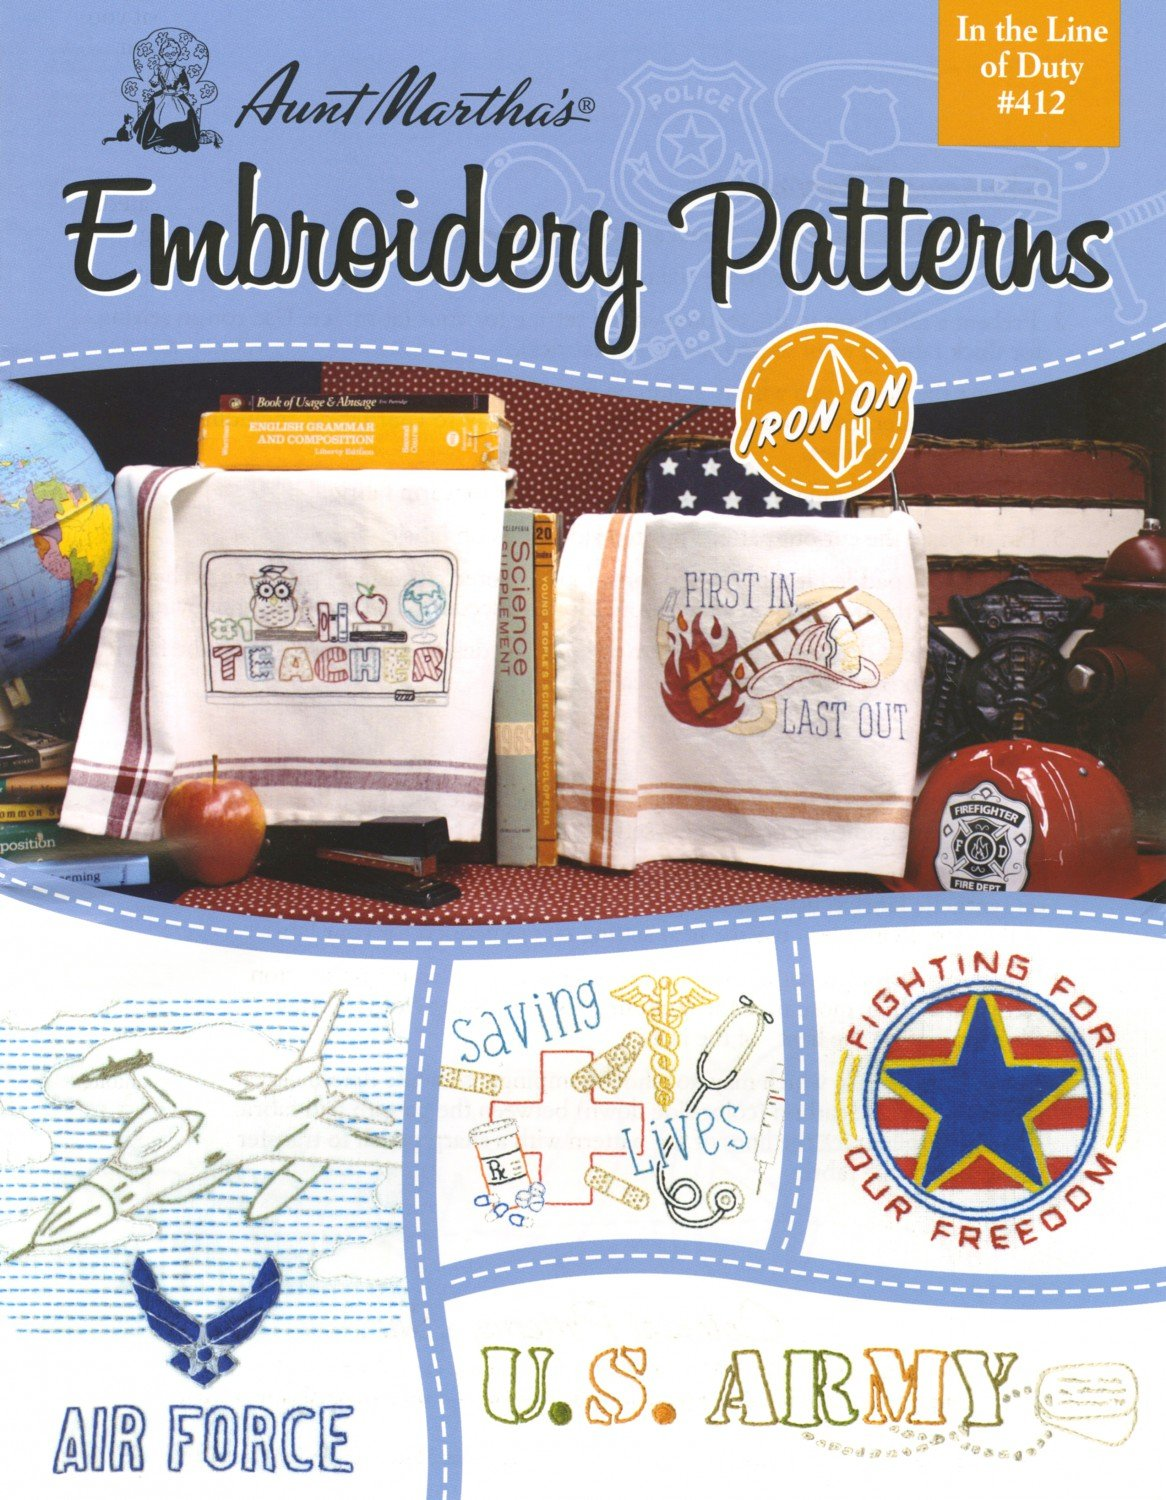 Aunt Martha's Embroidery Pattern: In the Line of Duty